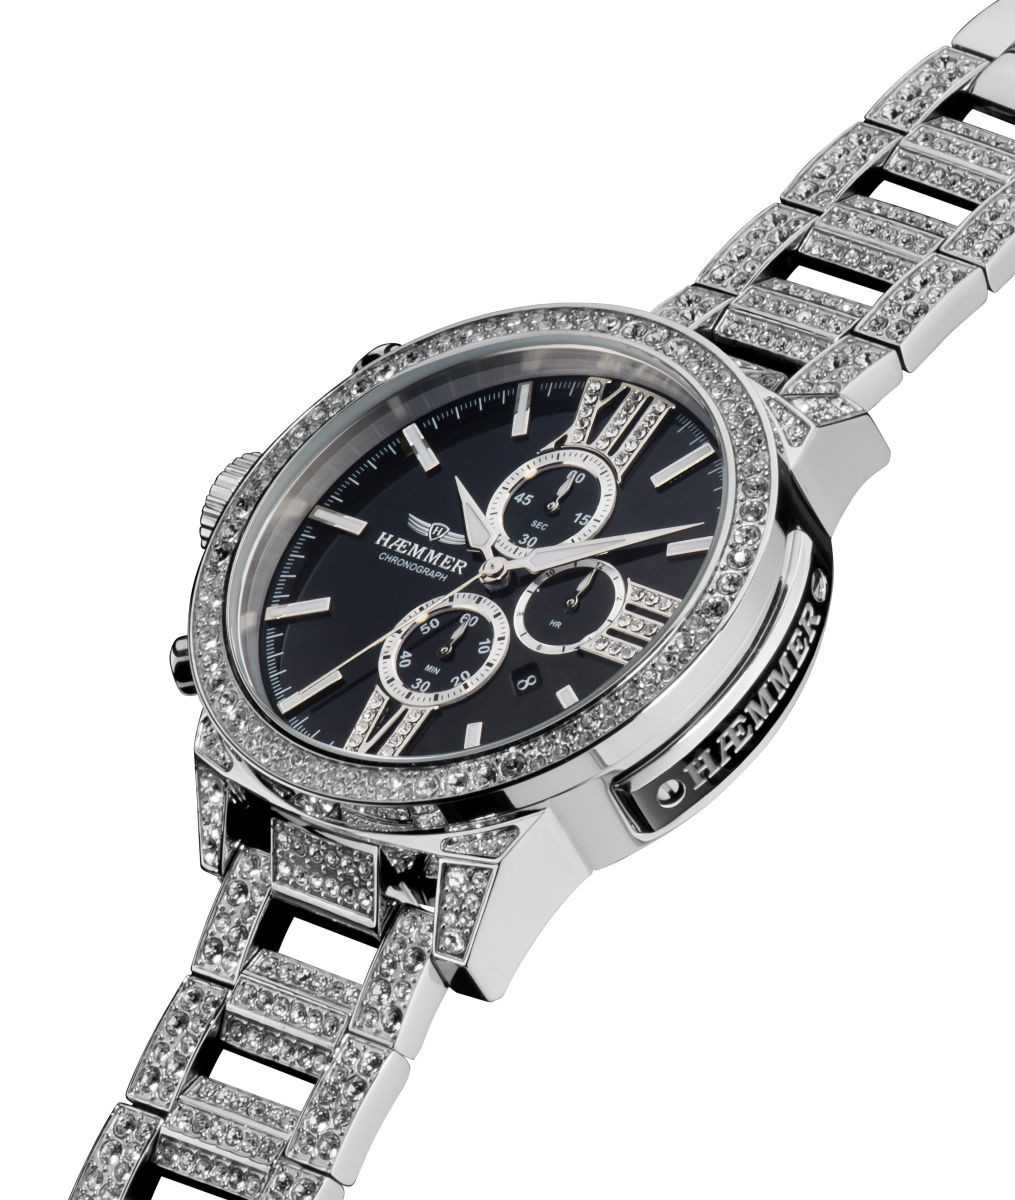 Haemmer Unique-99 Kollektion Damen Chronograph XXL L.Ed. U-100 - Edelstahlband - 45 mm